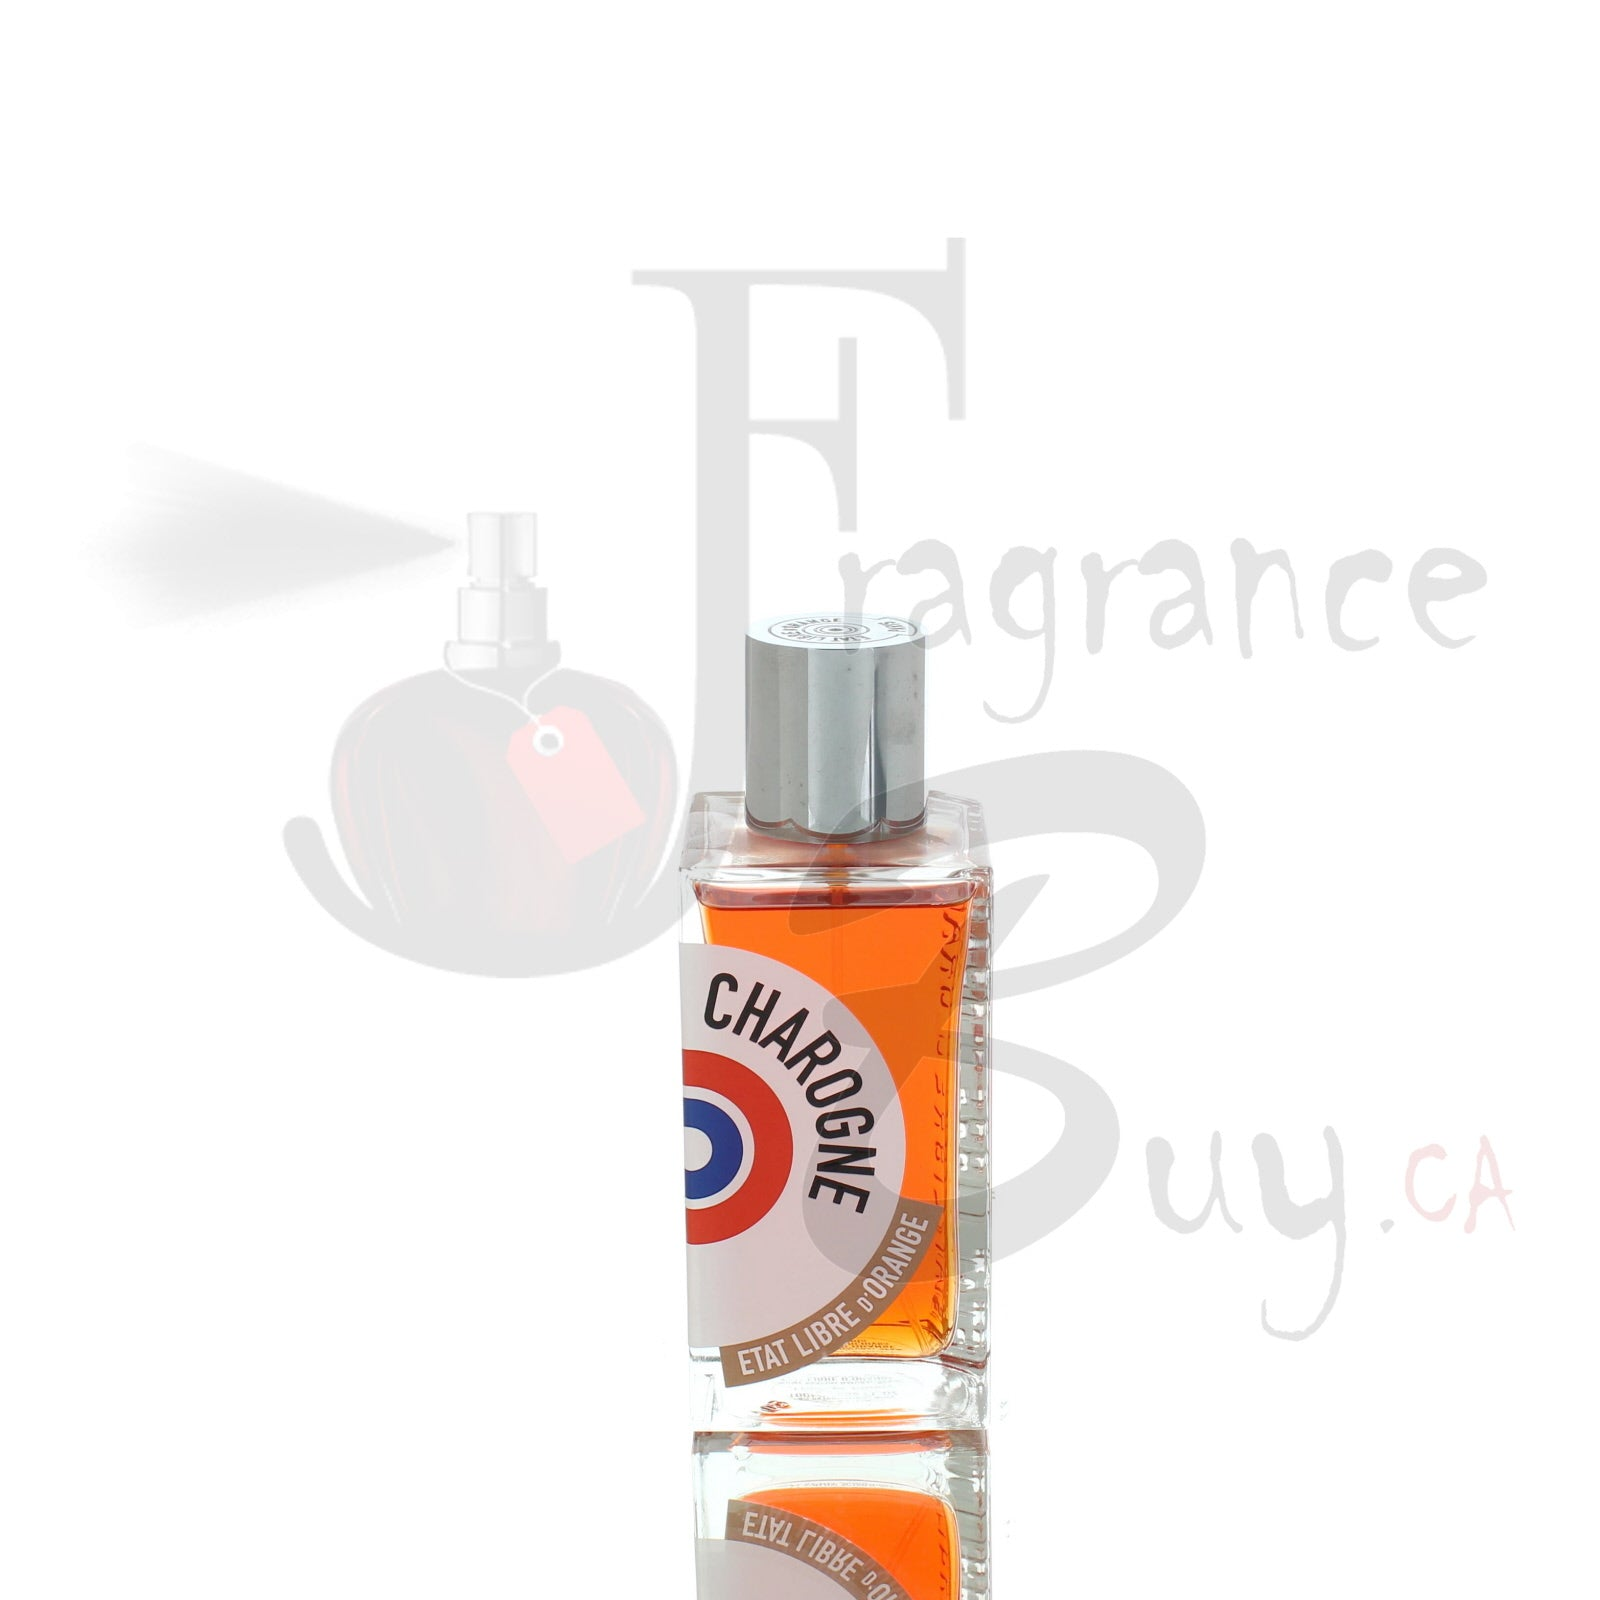 Etat Libre D'orange Charogne For Man/Woman